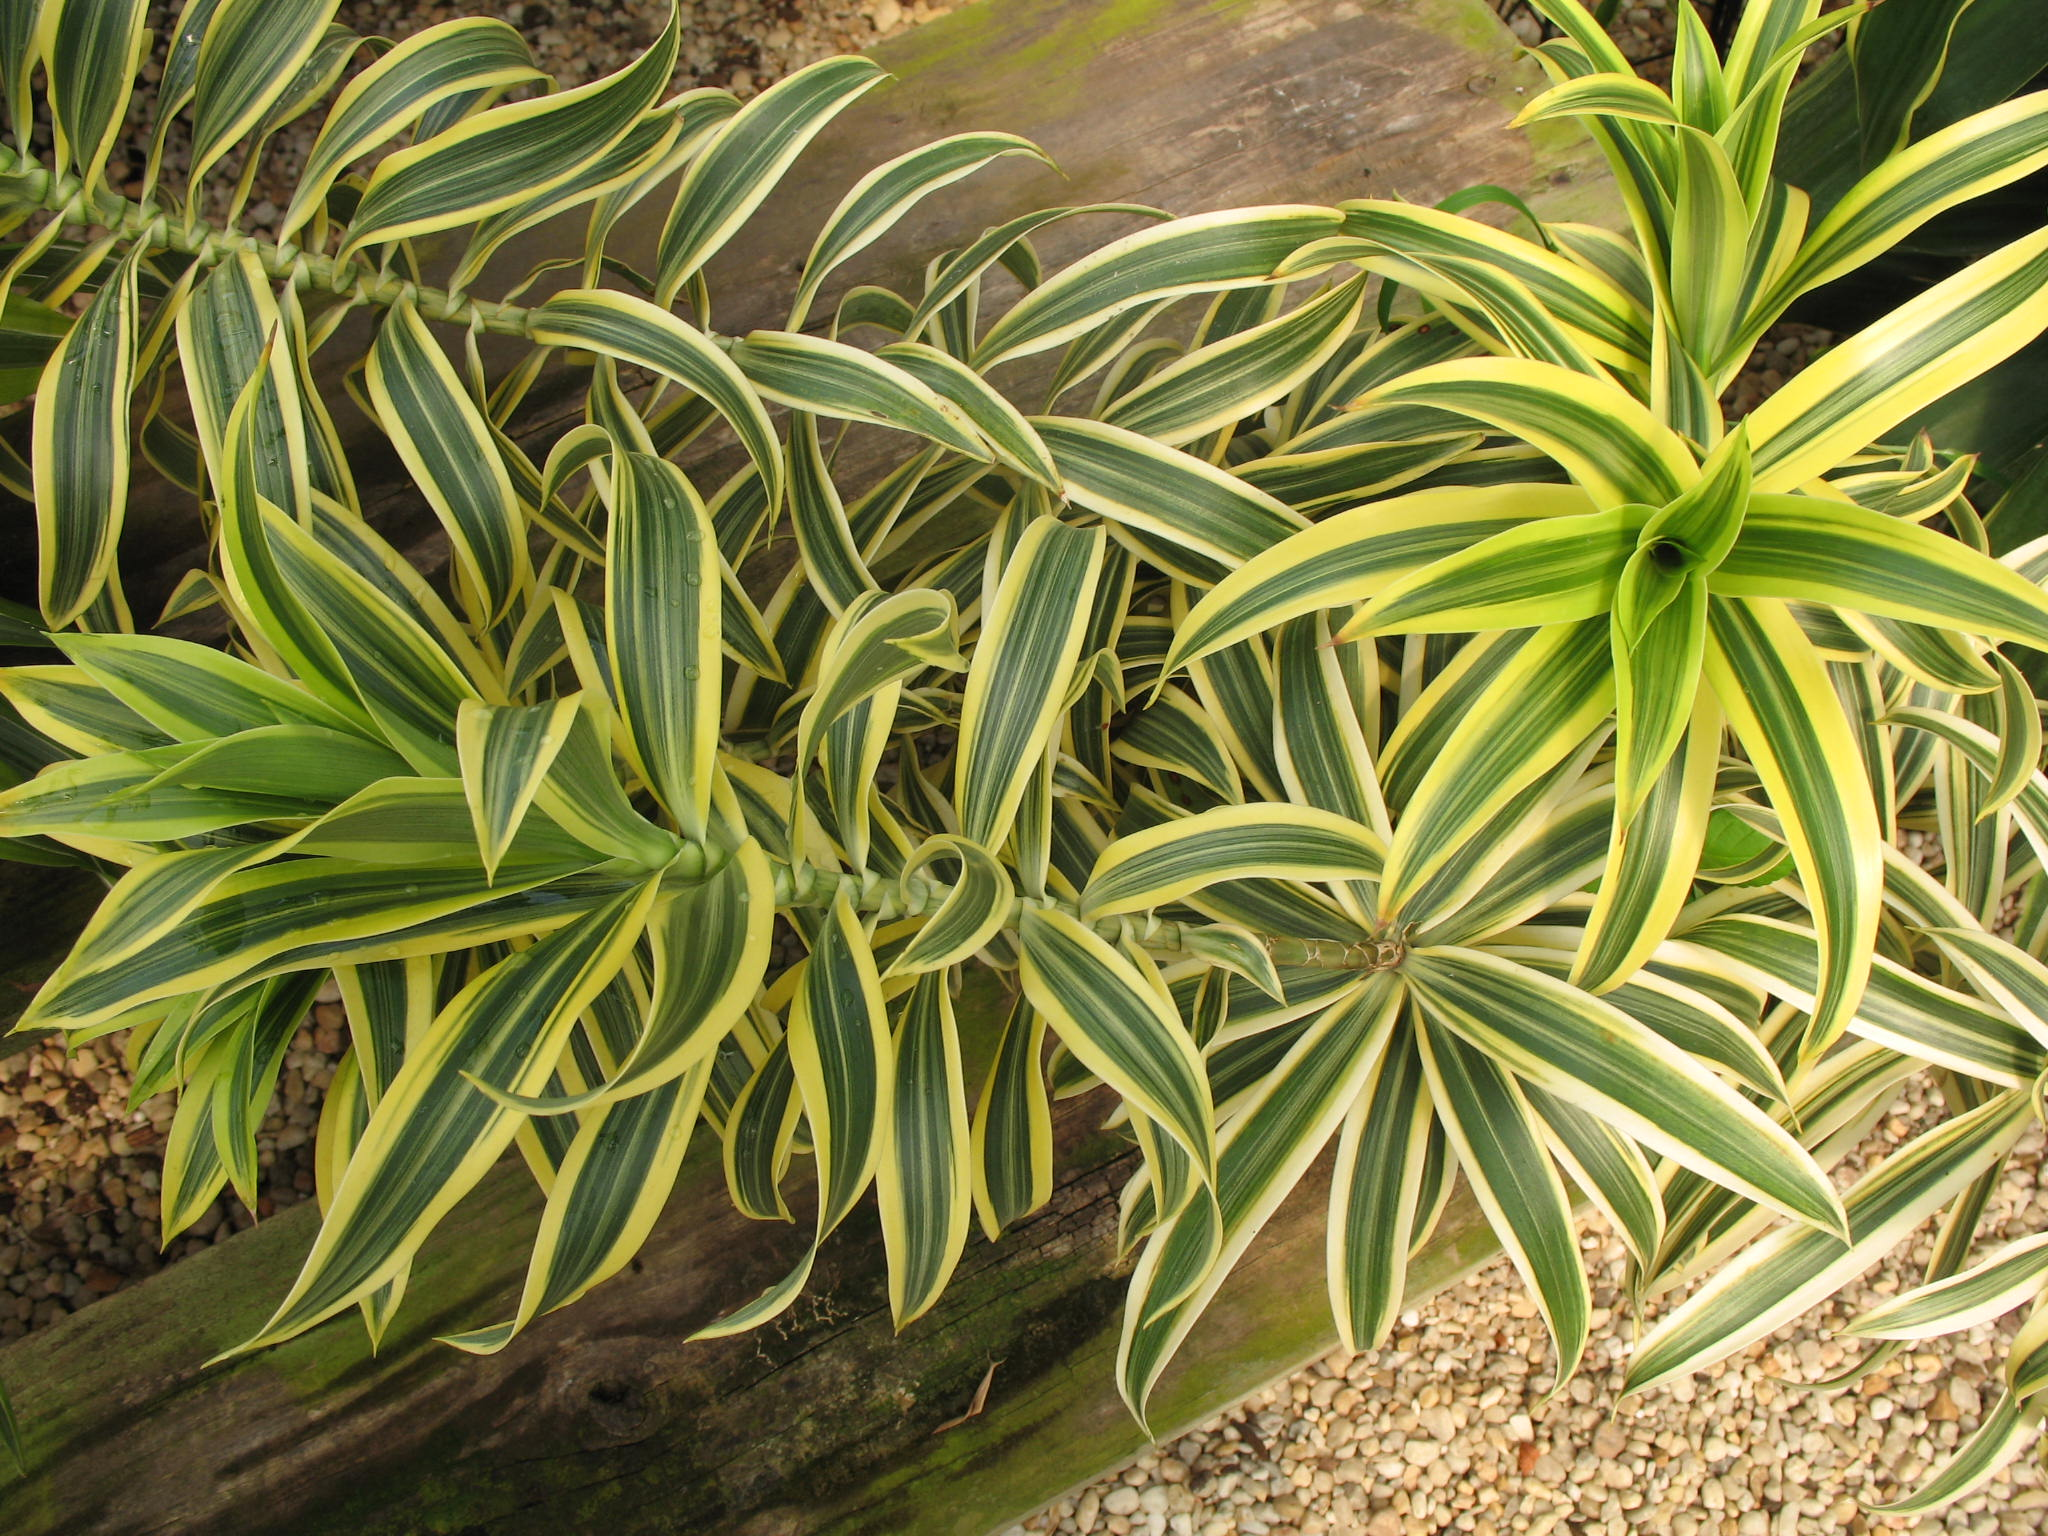 Dracaena reflexa 'Song of India'  / Dracaena reflexa 'Song of India'